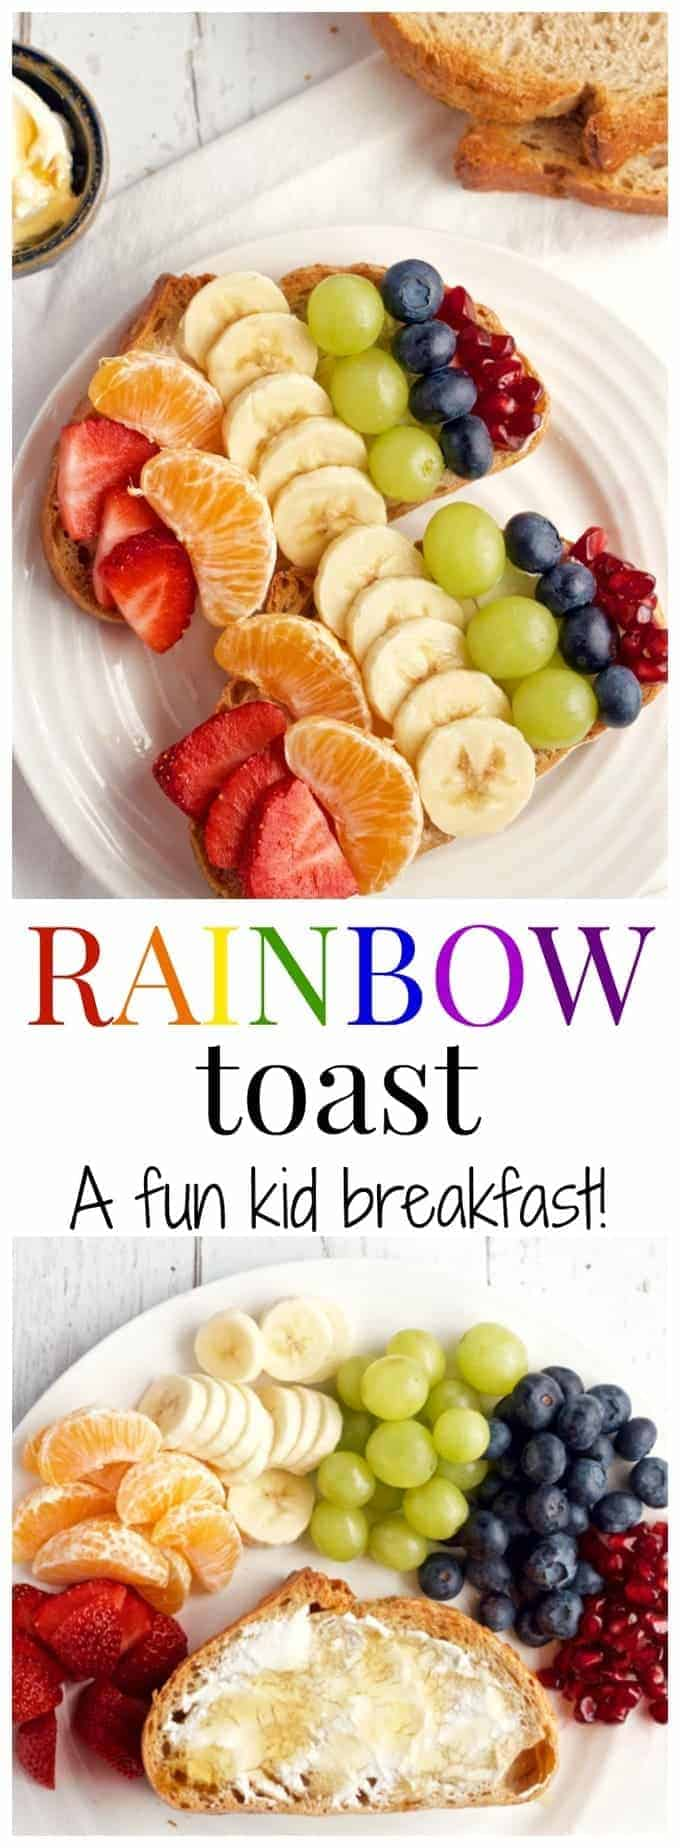 Rainbow toast - a fun fruit toast for kids! | FamilyFoodontheTable.com